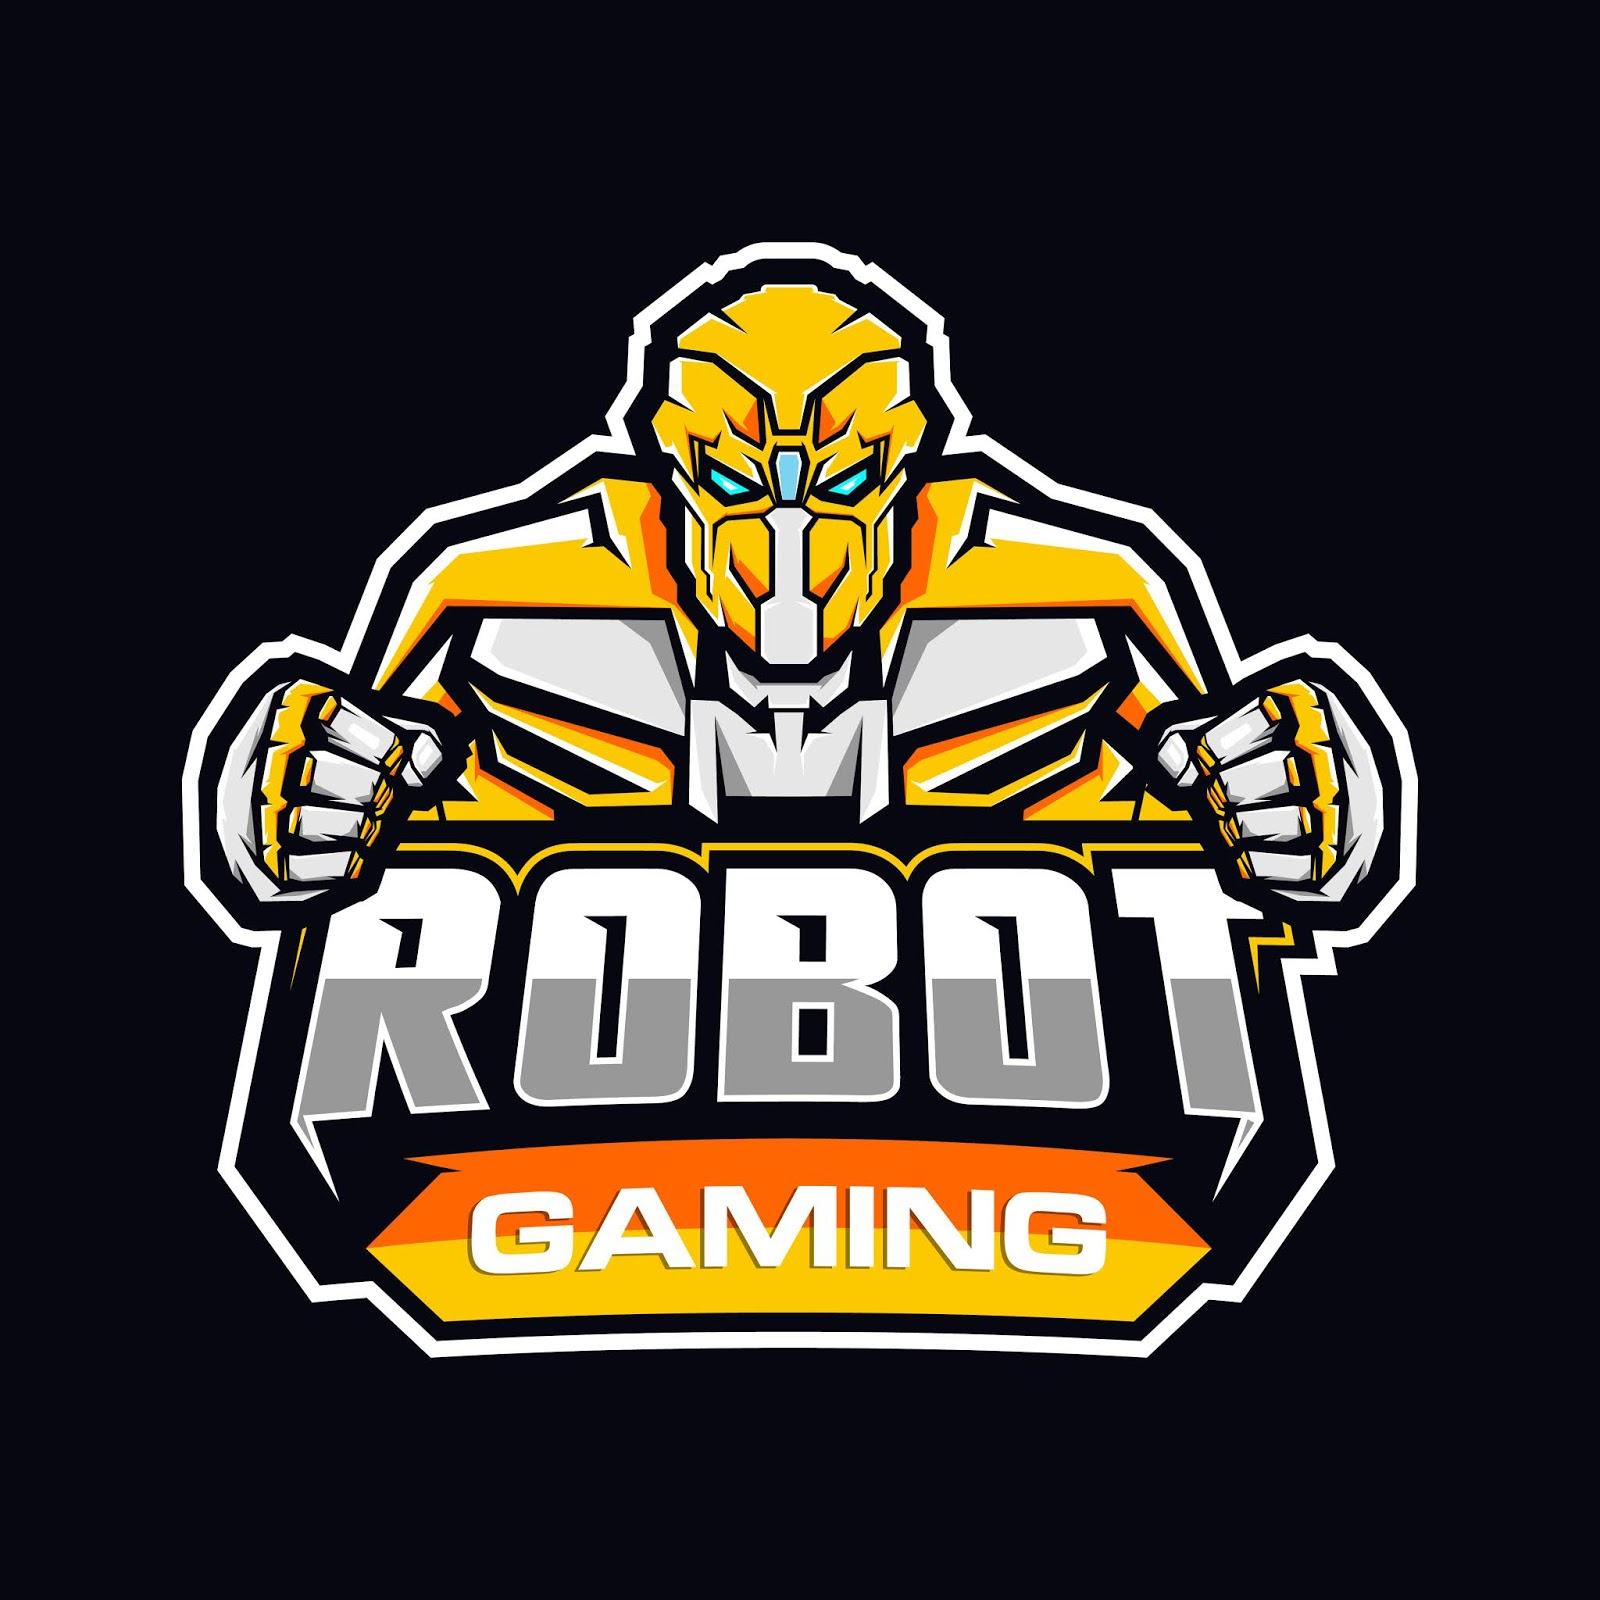 Gaming Robot Logo Free Download Vector CDR, AI, EPS and PNG Formats